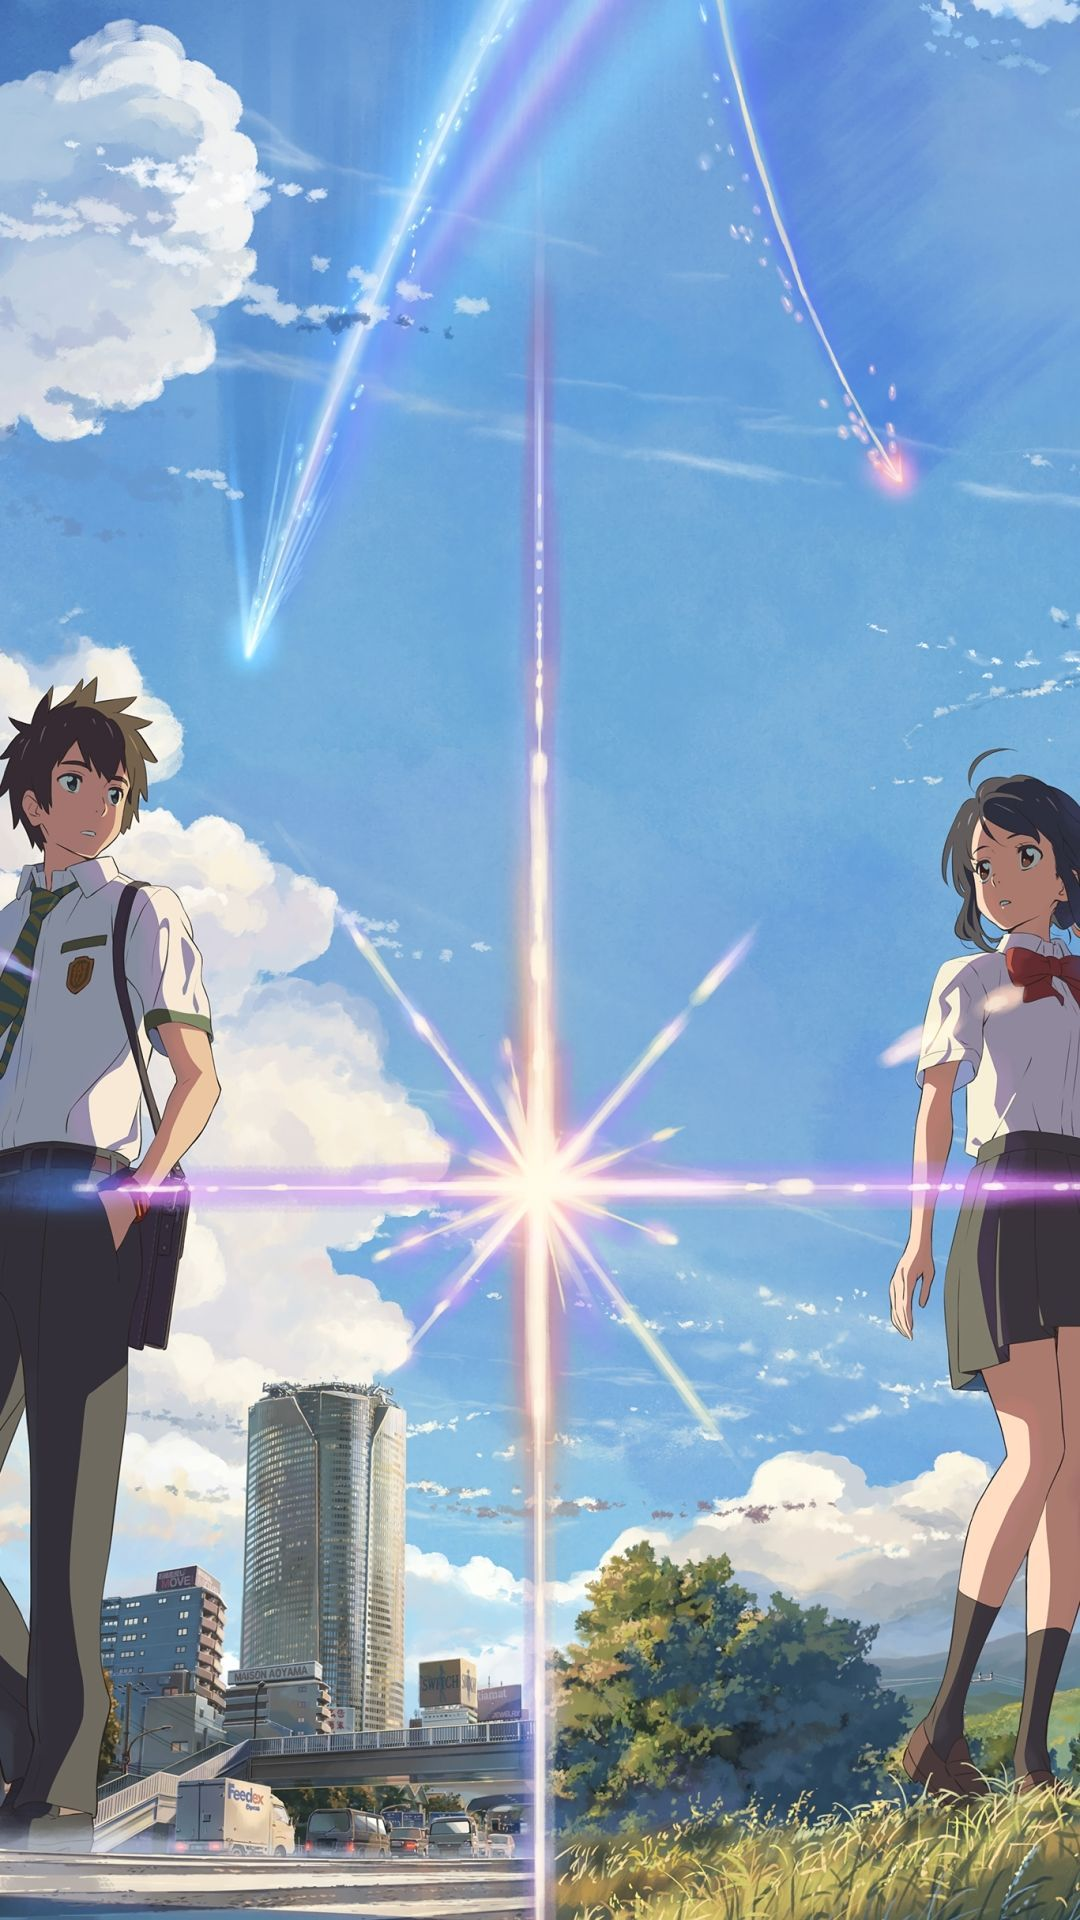 Your Name 8k Wallpaper in 2020 Your name wallpaper, Kimi